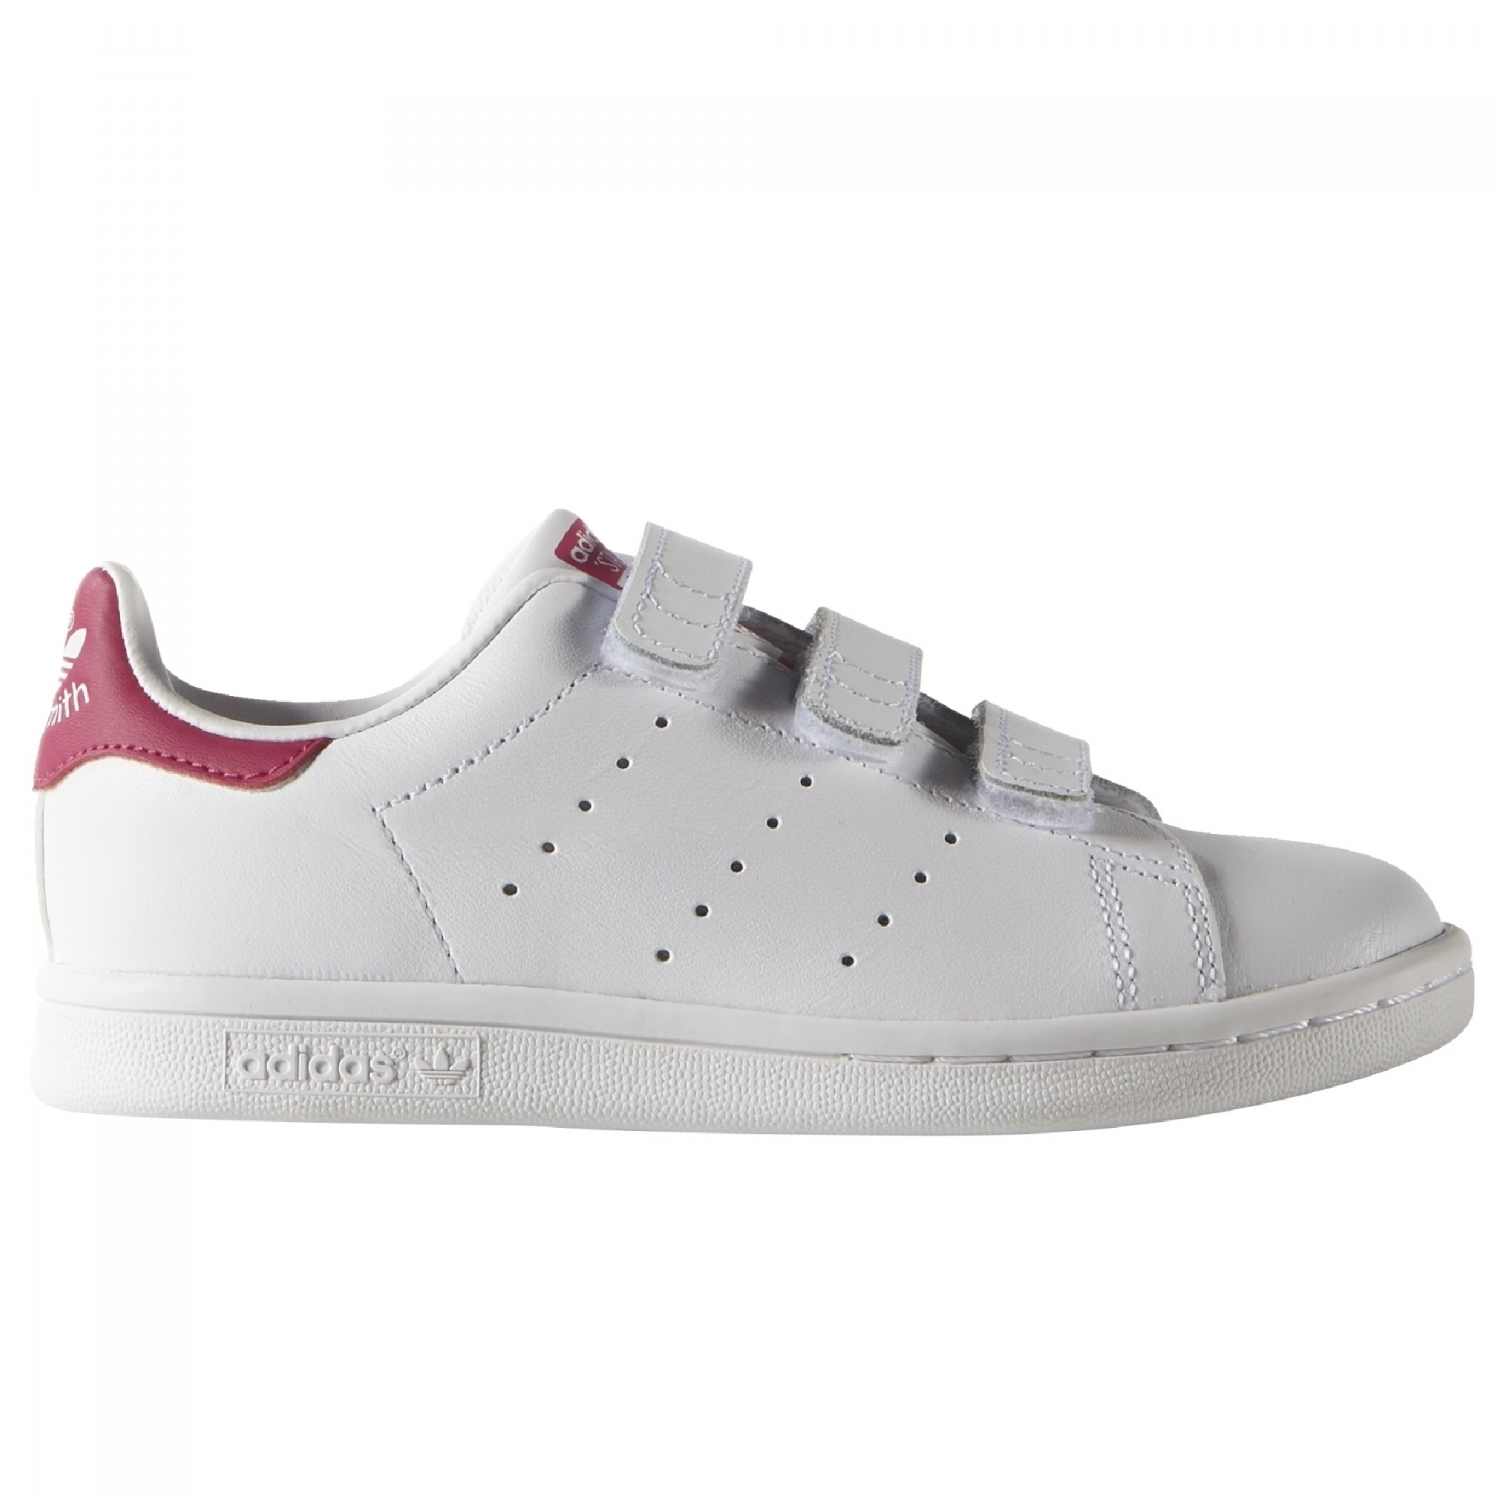 premium selection 47215 5126a adidas stan smith kinder 35 turnschuhe - sommerprogramme.de